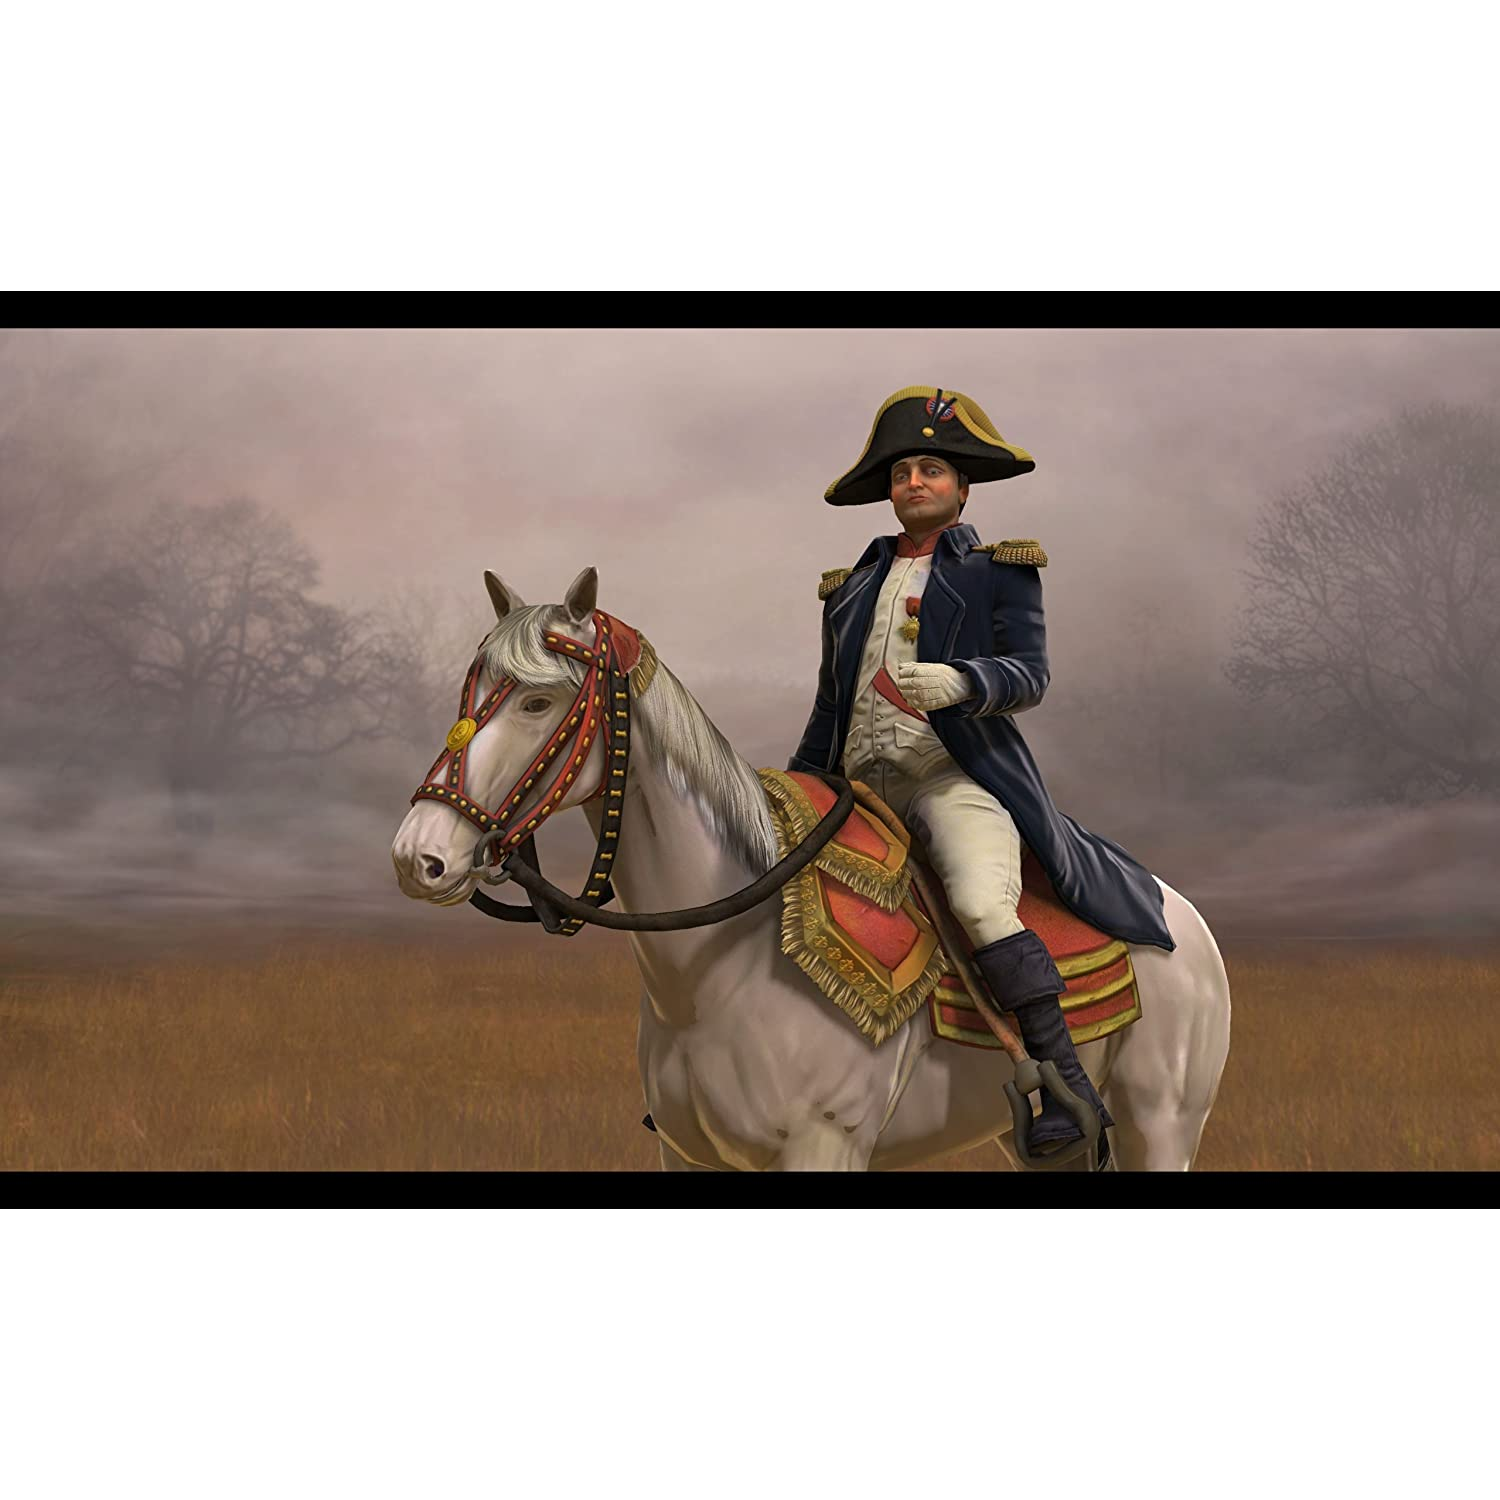 Online Game, Video Game, PC Games, Strategy, Turn-Based, Game Downloads, Core Games, Sid Meier, Civ, Civilization, Steam, Mac, Sid Meier's Civilization V